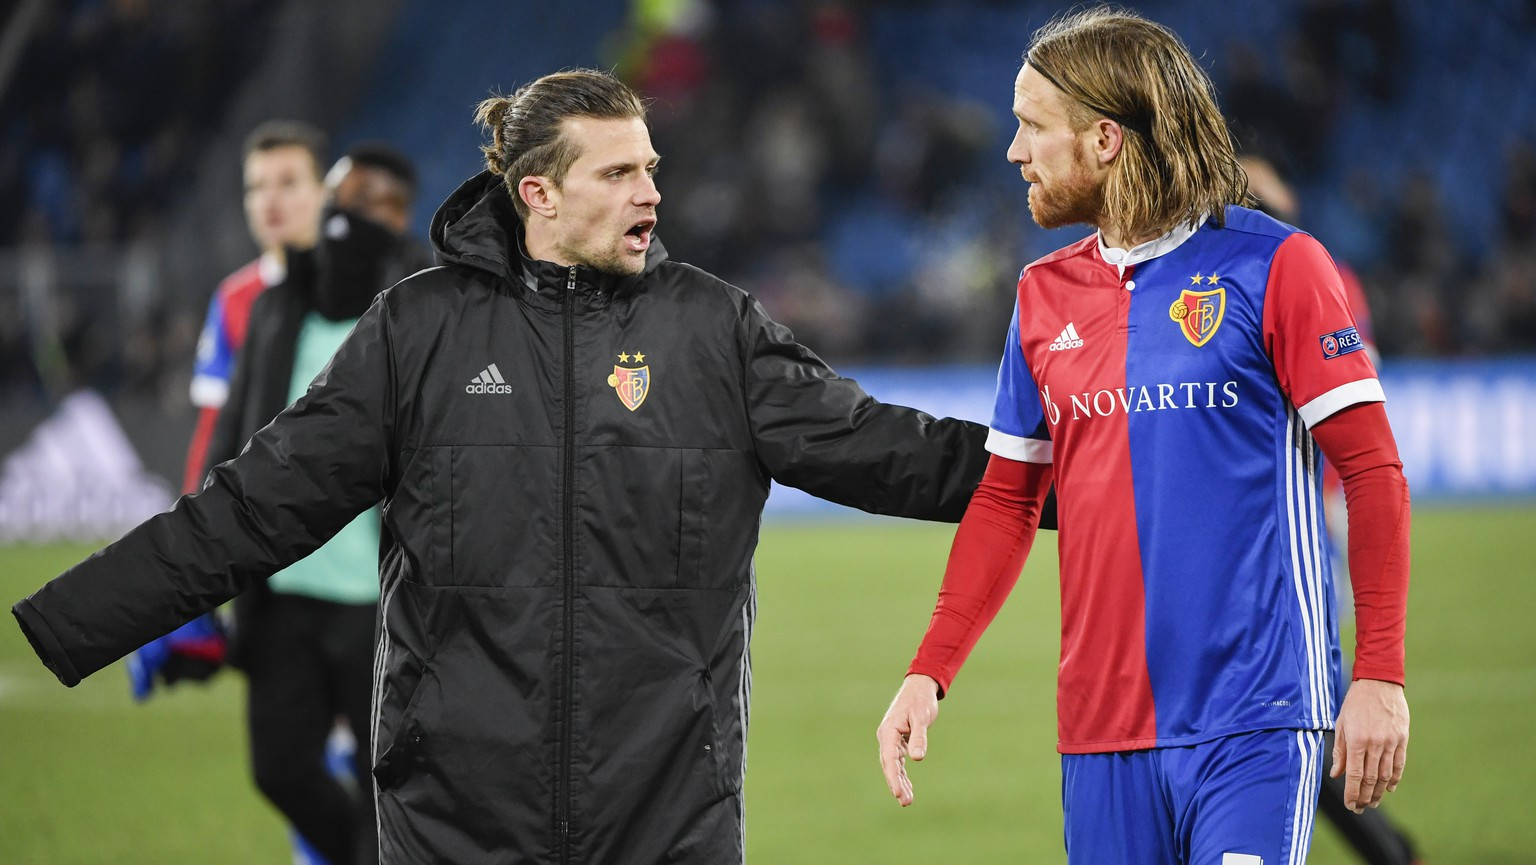 Basel's Valentin Stocker, left, and Michael Lang show dejection after the UEFA Champions League round of sixteen first leg soccer match between Switzerland's FC Basel 1893 and England's Manchester City FC in the St. Jakob-Park stadium in Basel, Switzerland, on Tuesday, February 13, 2018. (KEYSTONE/Georgios Kefalas)